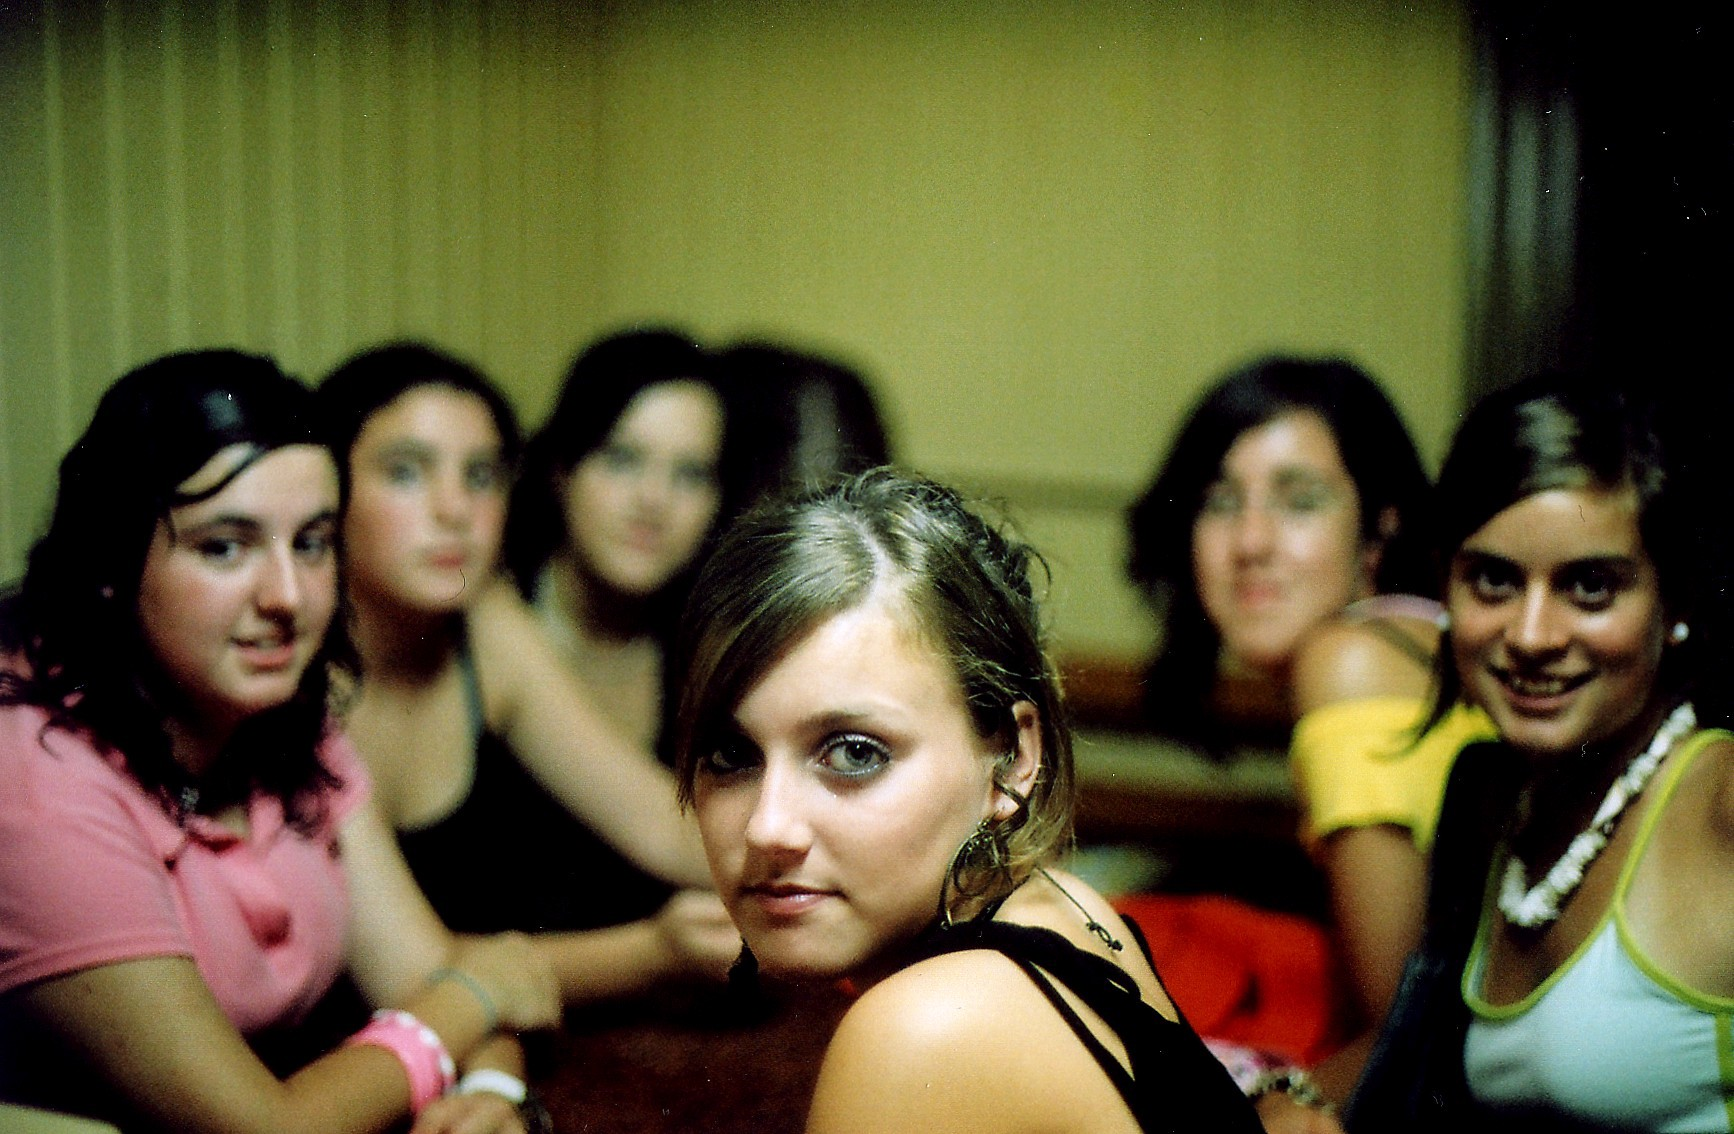 Bunch of young teen girls sitting around a table, looking judgmental